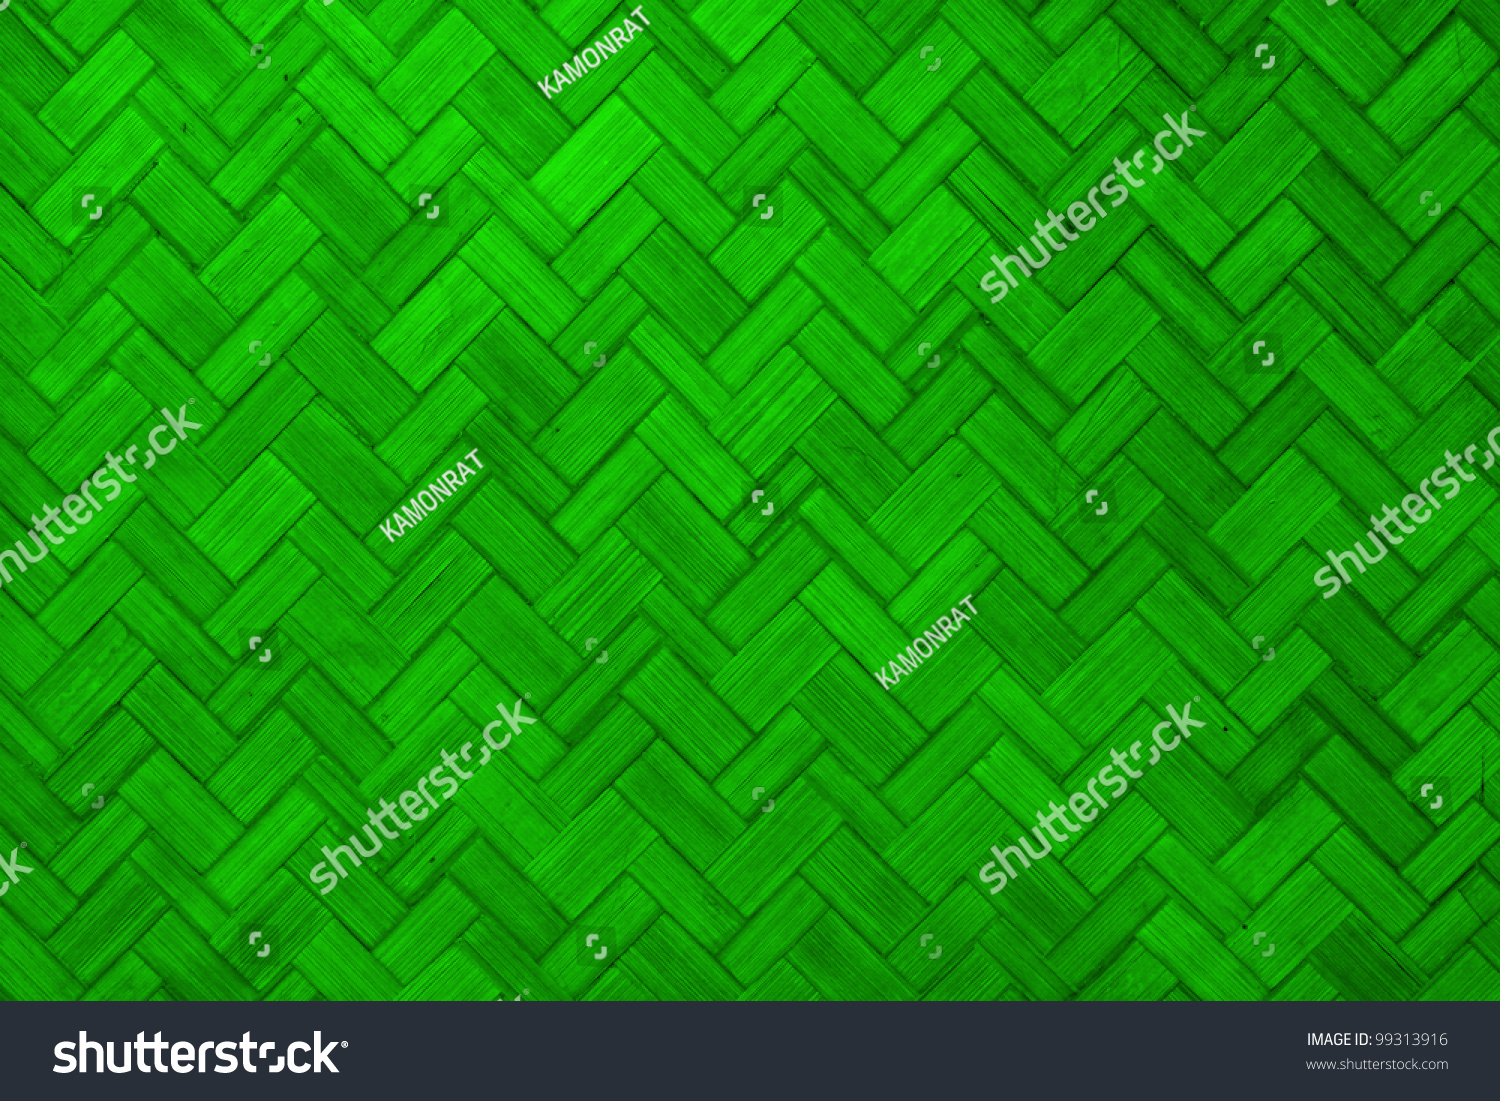 Texture Of Light Green Color Paint Weave Wall For Background